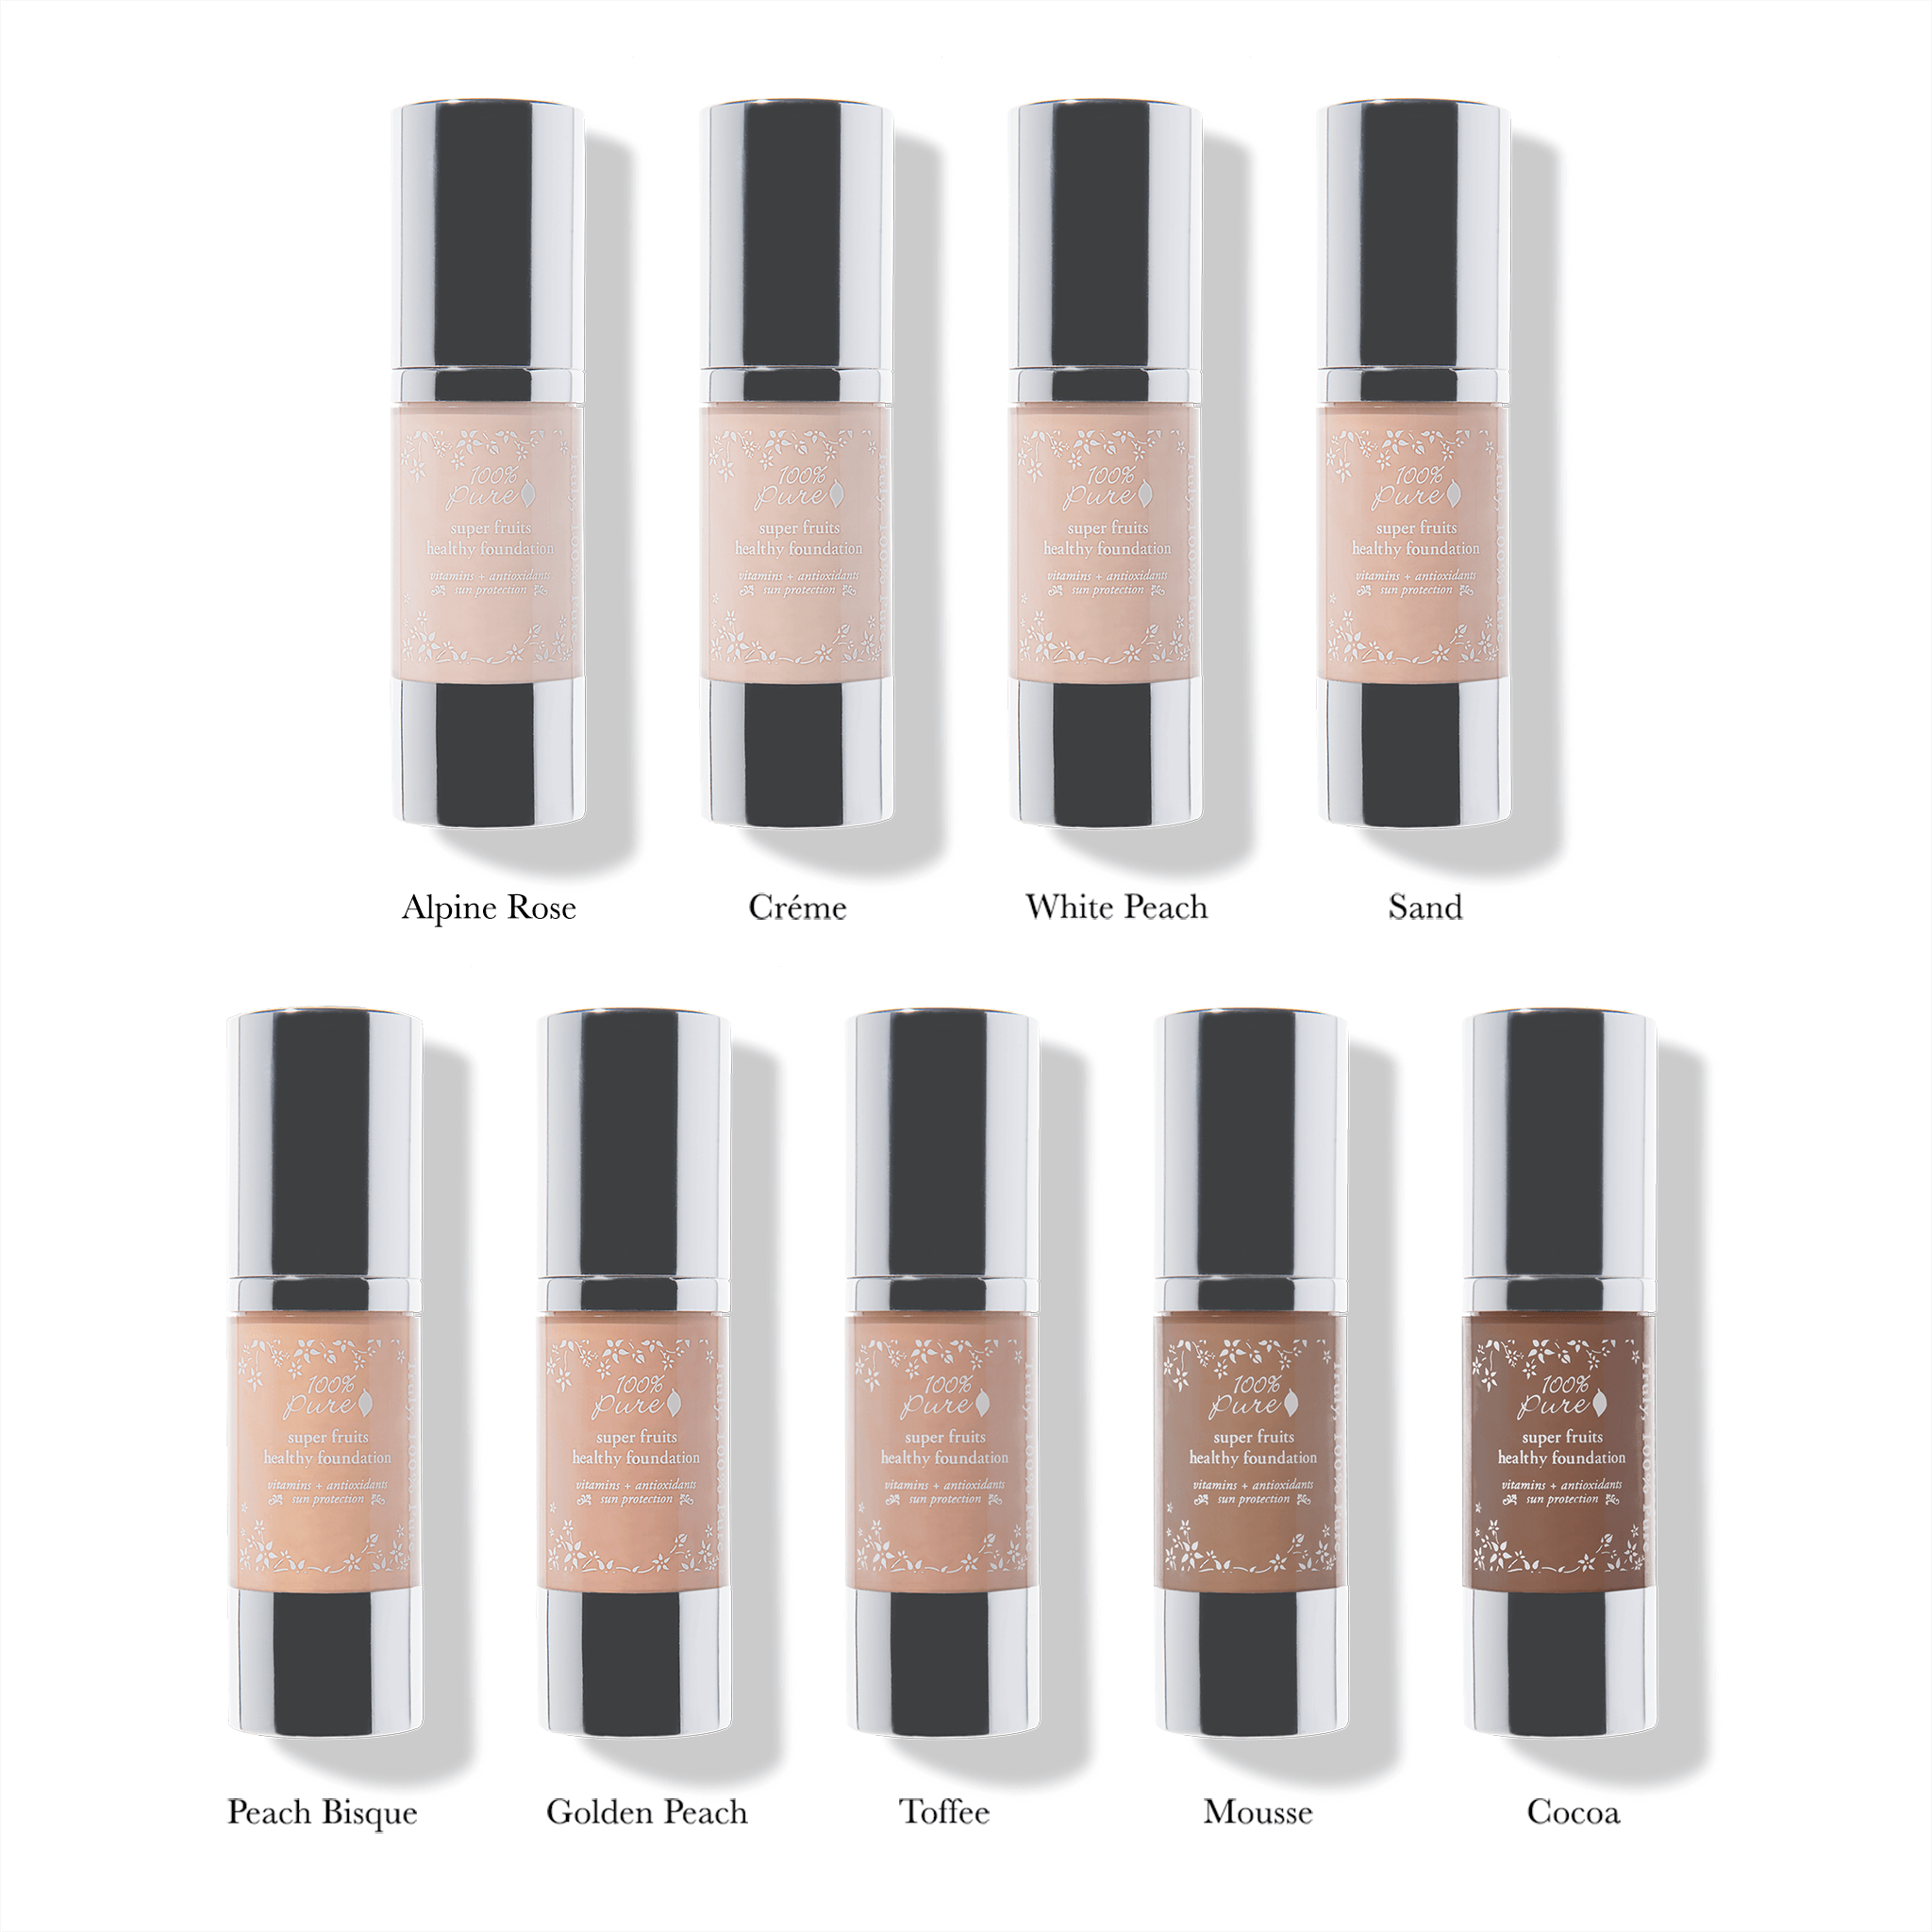 100% Pure Naturkosmetik Foundation / Fruit Pigmented Healthy Foundation